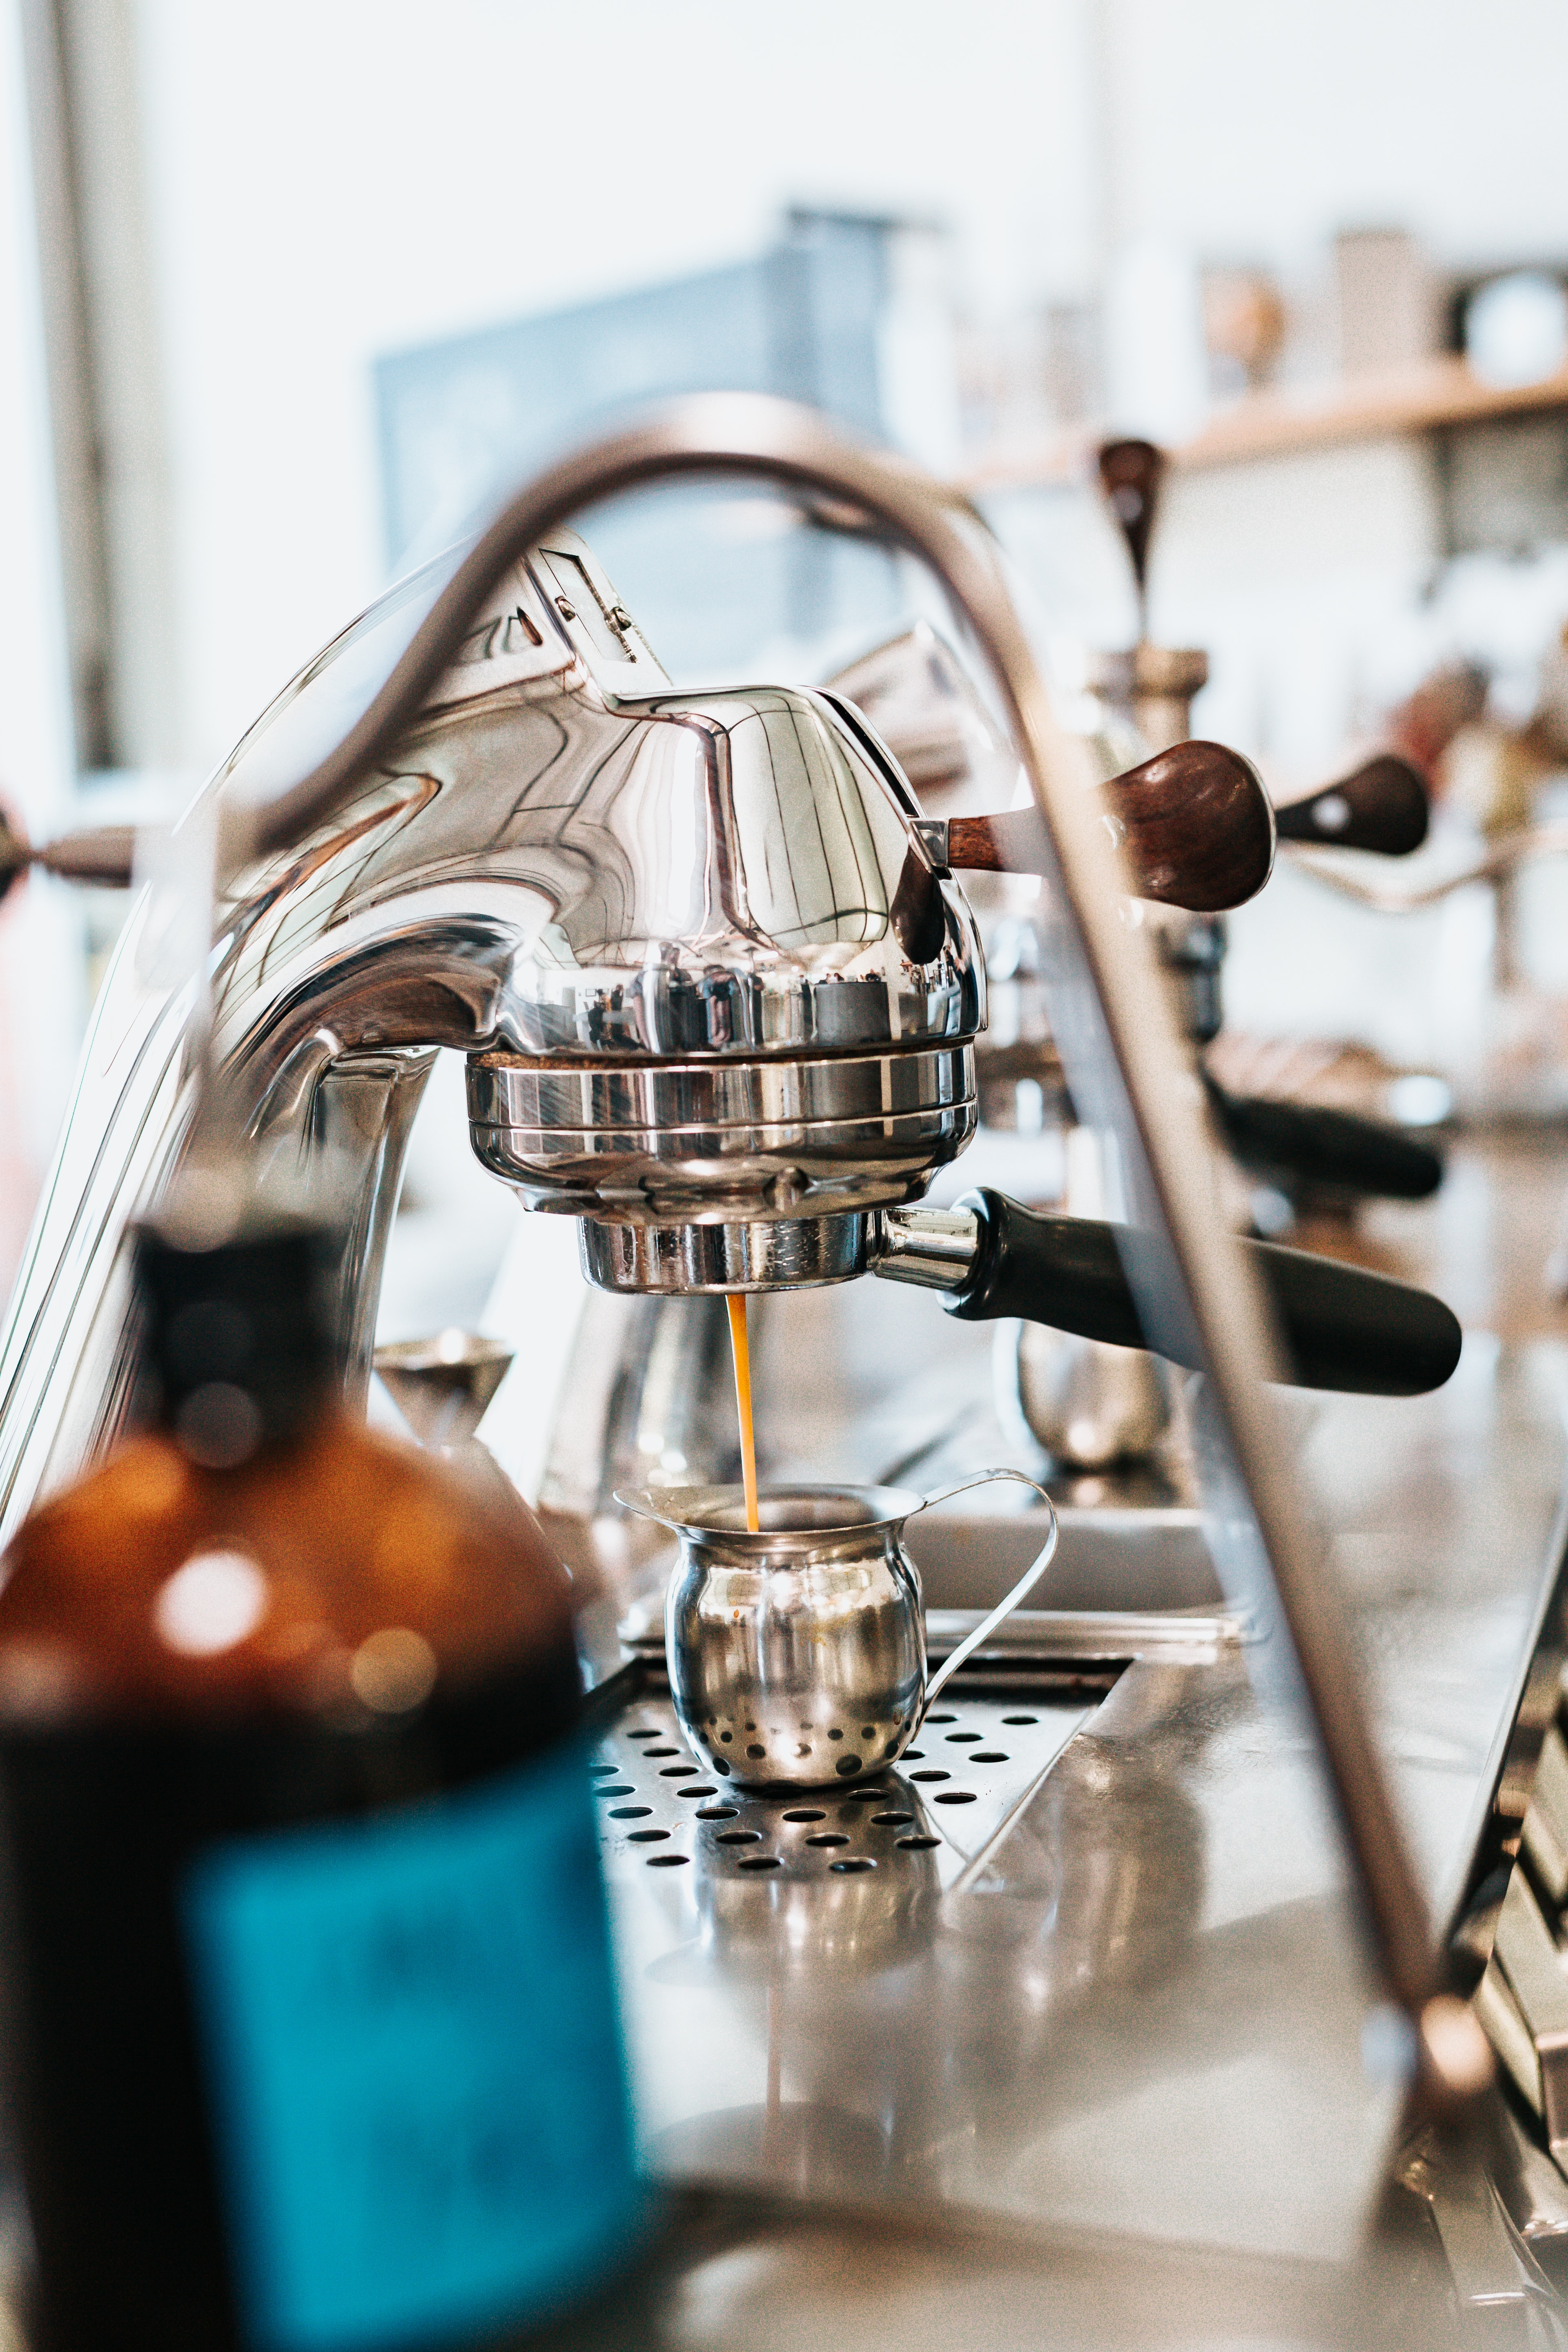 stainless steel espresso maker filling a cup